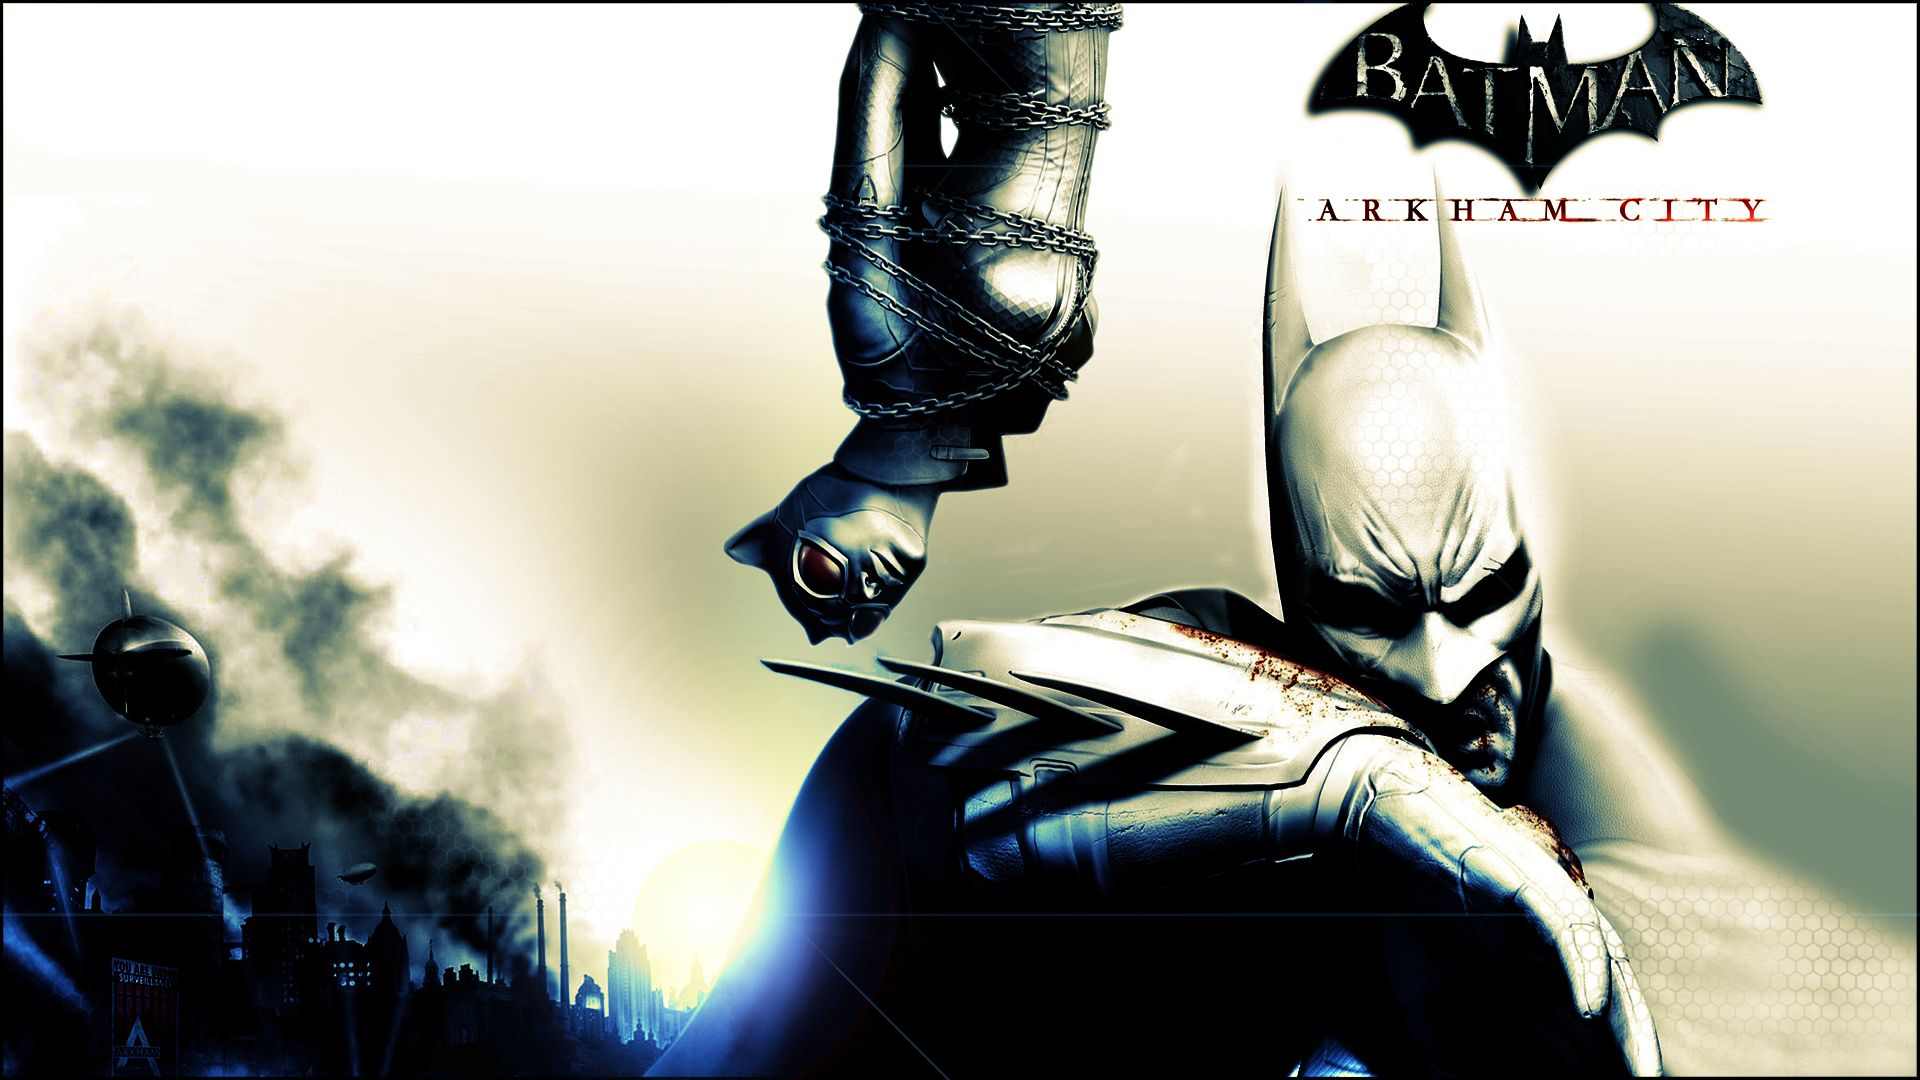 Batman HD Desktop Wallpaper 1920x1080